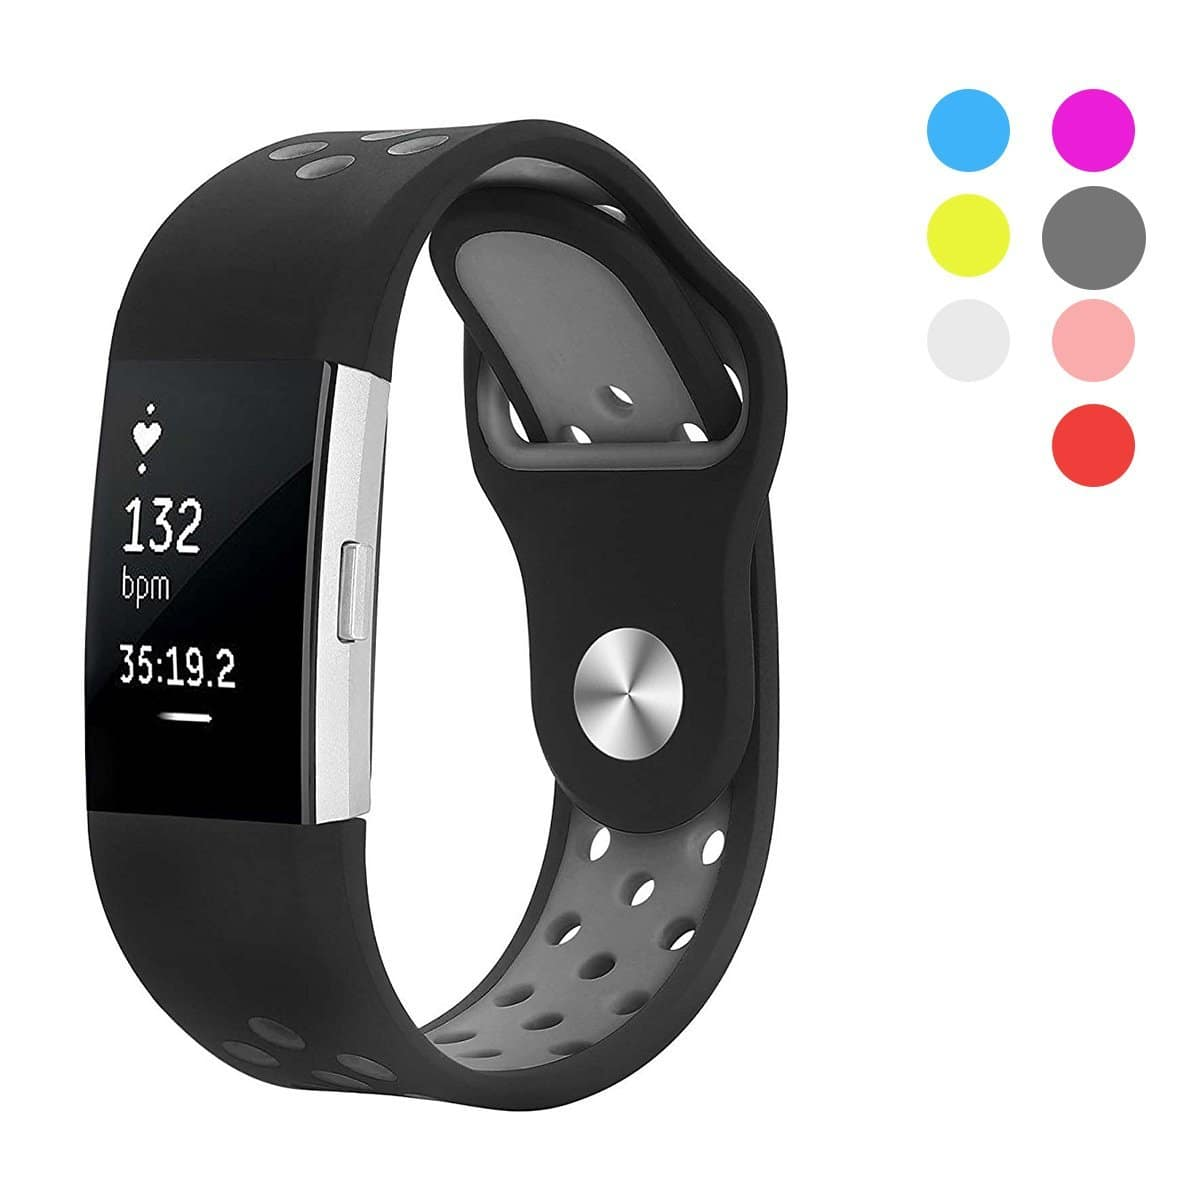 Fitbit Charge 2 Bands for Sport  (Various colors) - $7.49 + Free Shipping